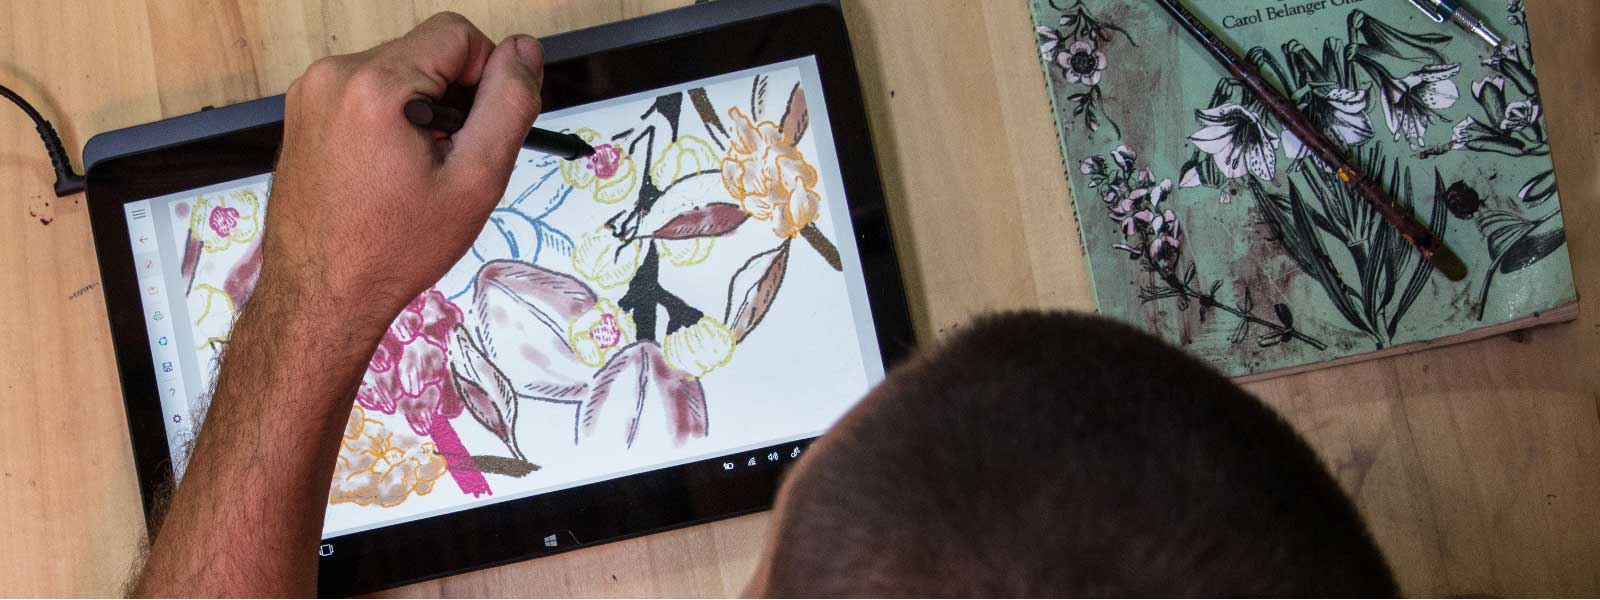 Windows Ink su Lenovo Yoga in modalità tablet